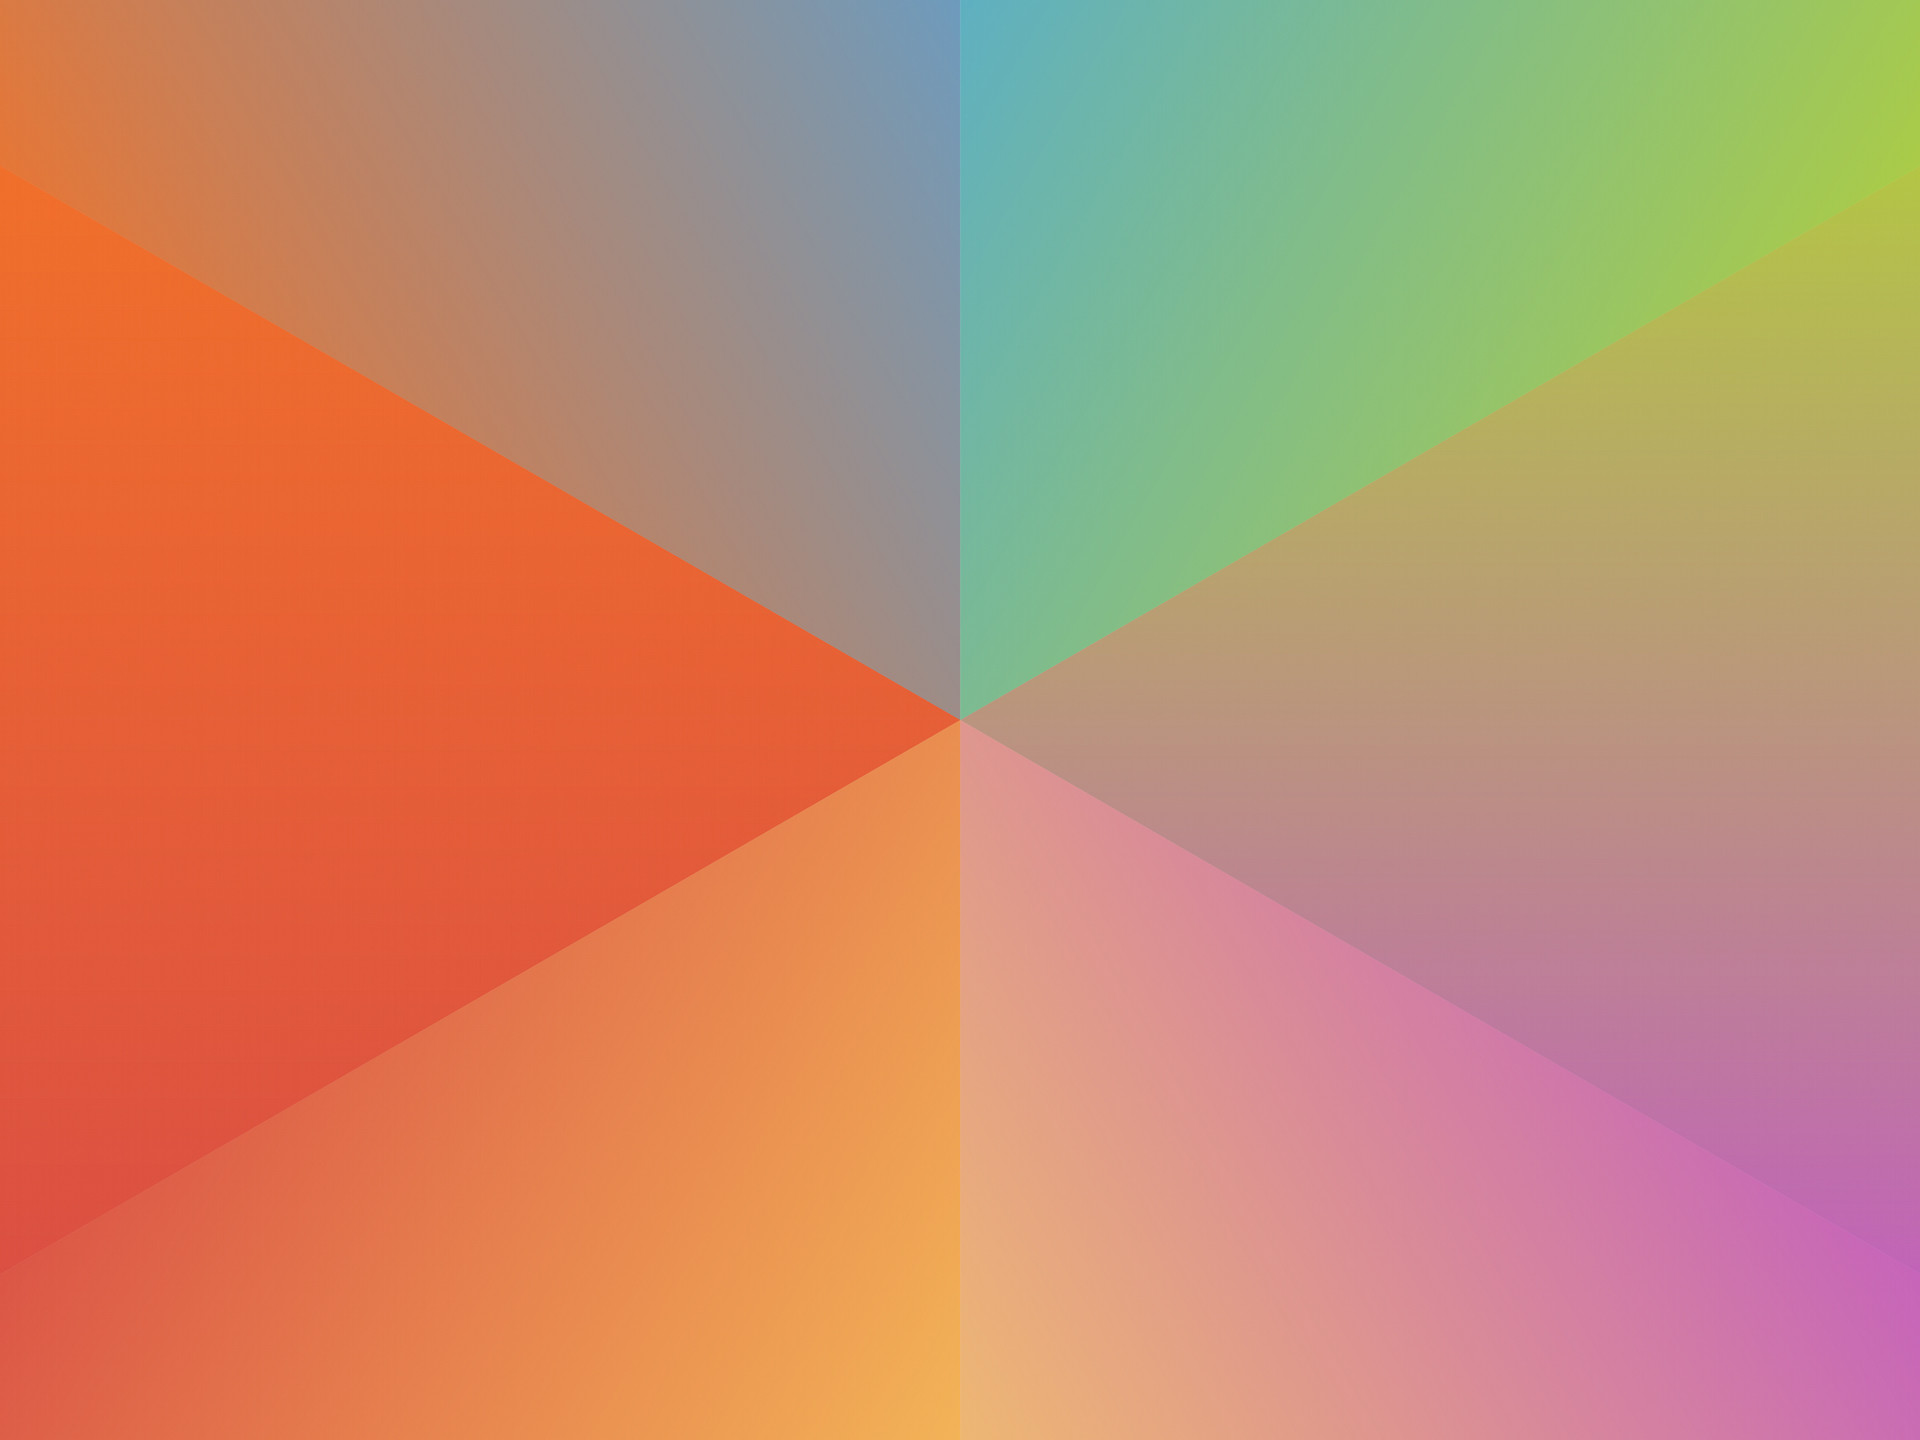 … 35 triangle wallpapers for your android aivanet …